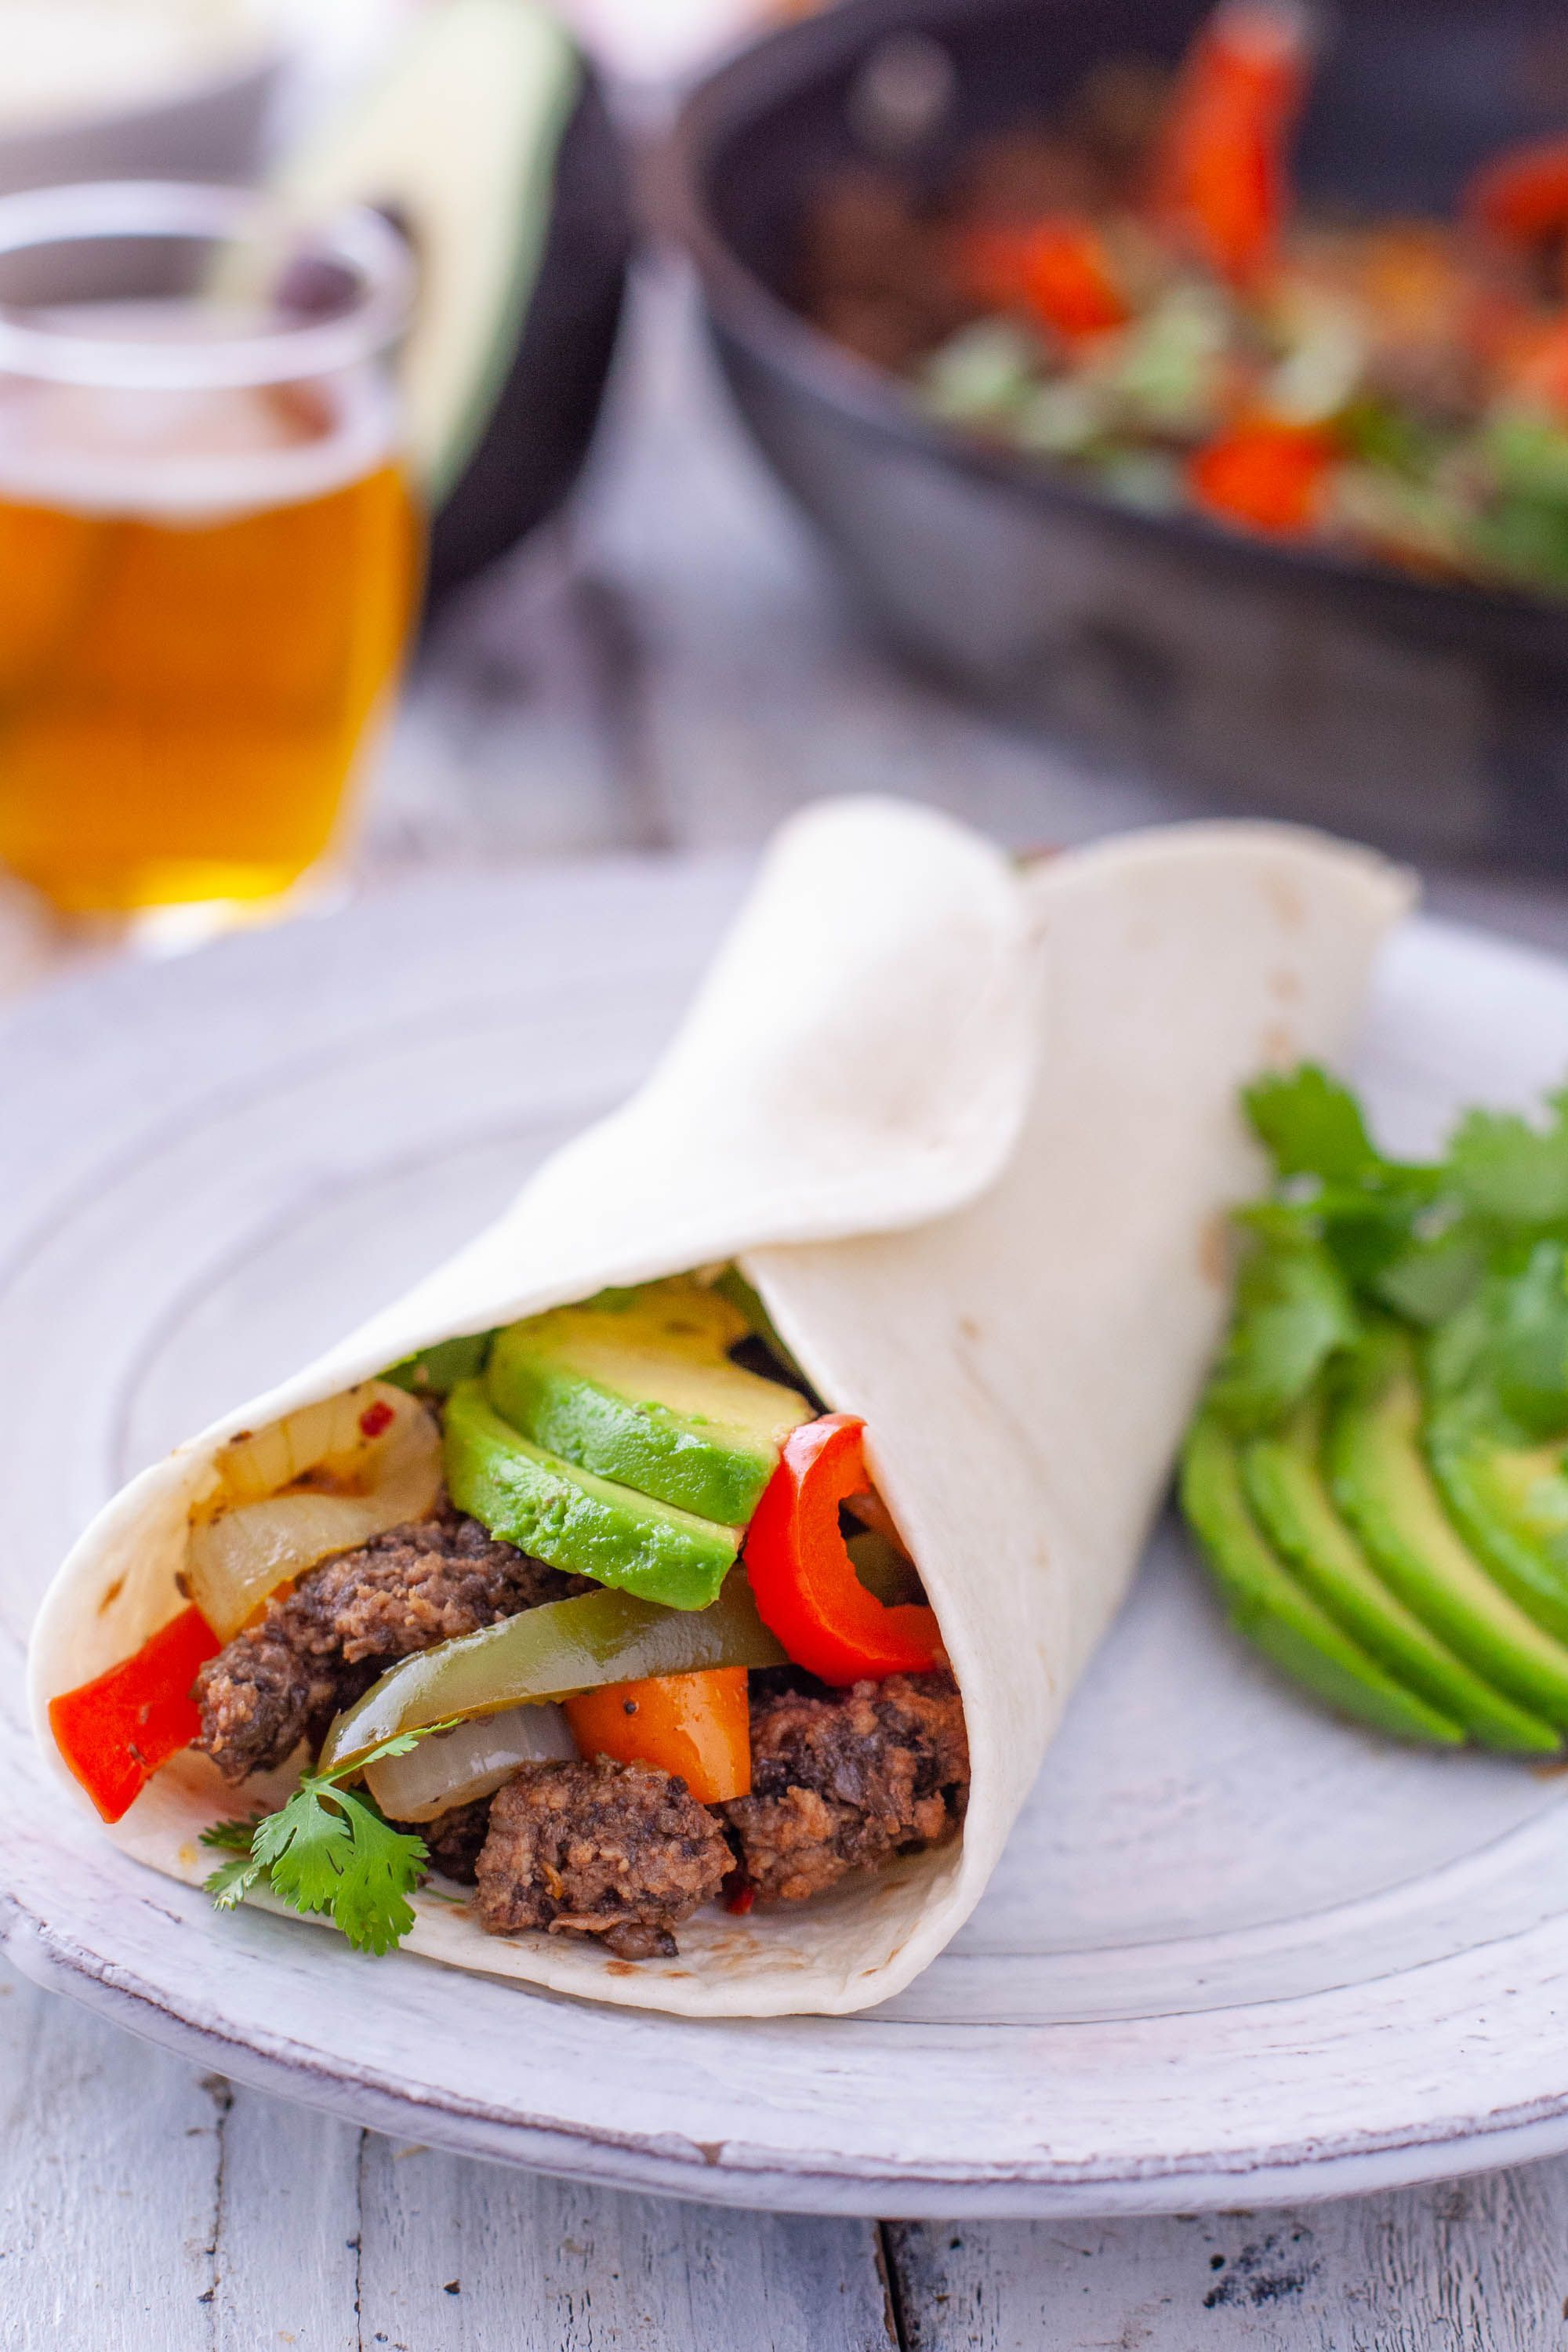 This ground beef fajitas recipe is an easy fajita recipe for a kid friendly dinner even young children can eat. Plus the beef has a secret serving of veggies! #beeffajitarecipe This ground beef fajitas recipe is an easy fajita recipe for a kid friendly dinner even young children can eat. Plus the beef has a secret serving of veggies! #beeffajitarecipe